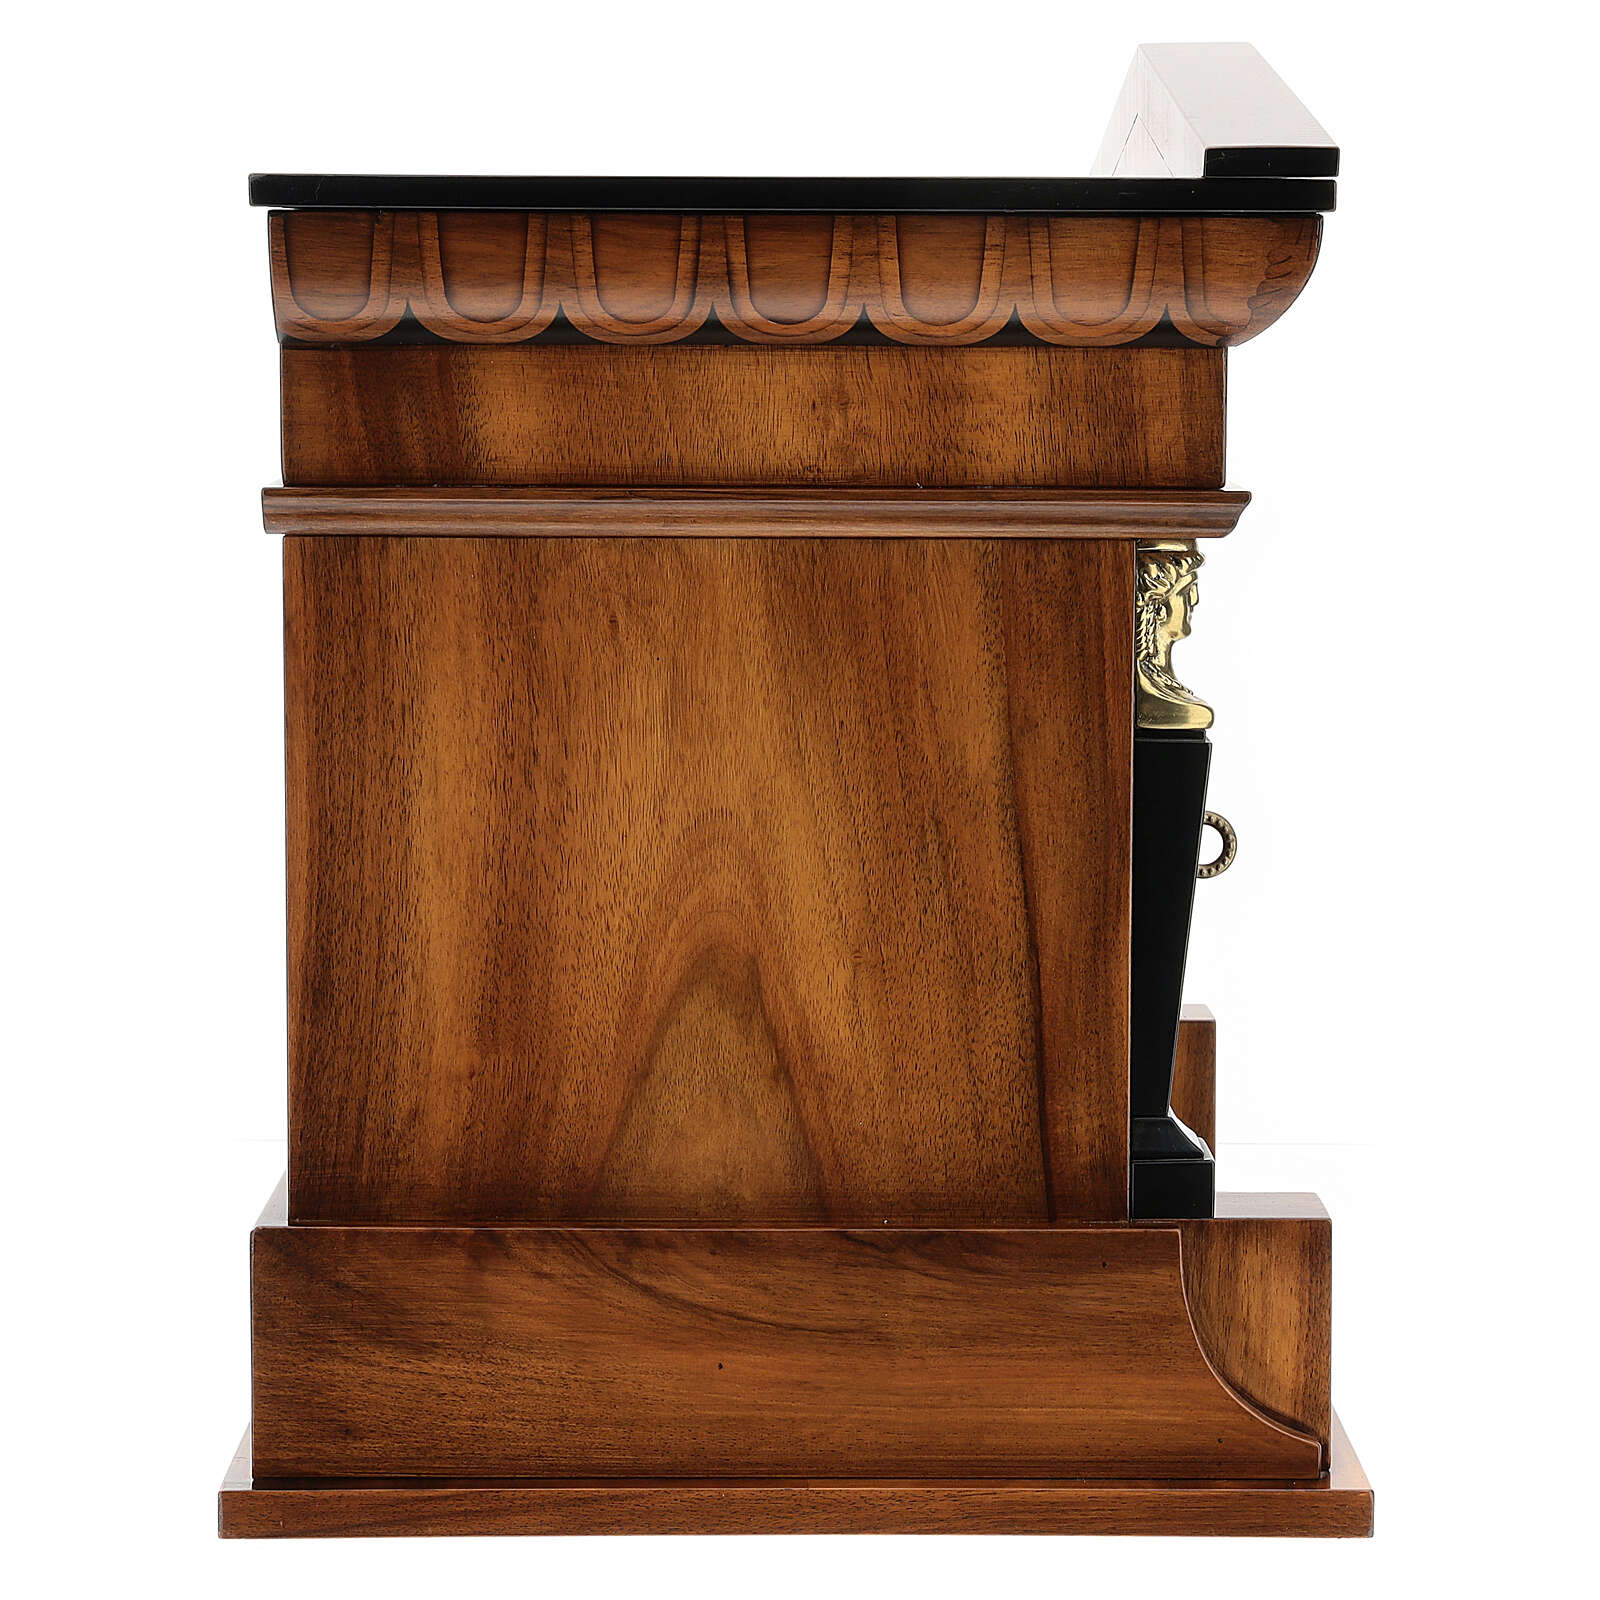 Temple cremation urn, in varnished mahogany for 2 urns 3